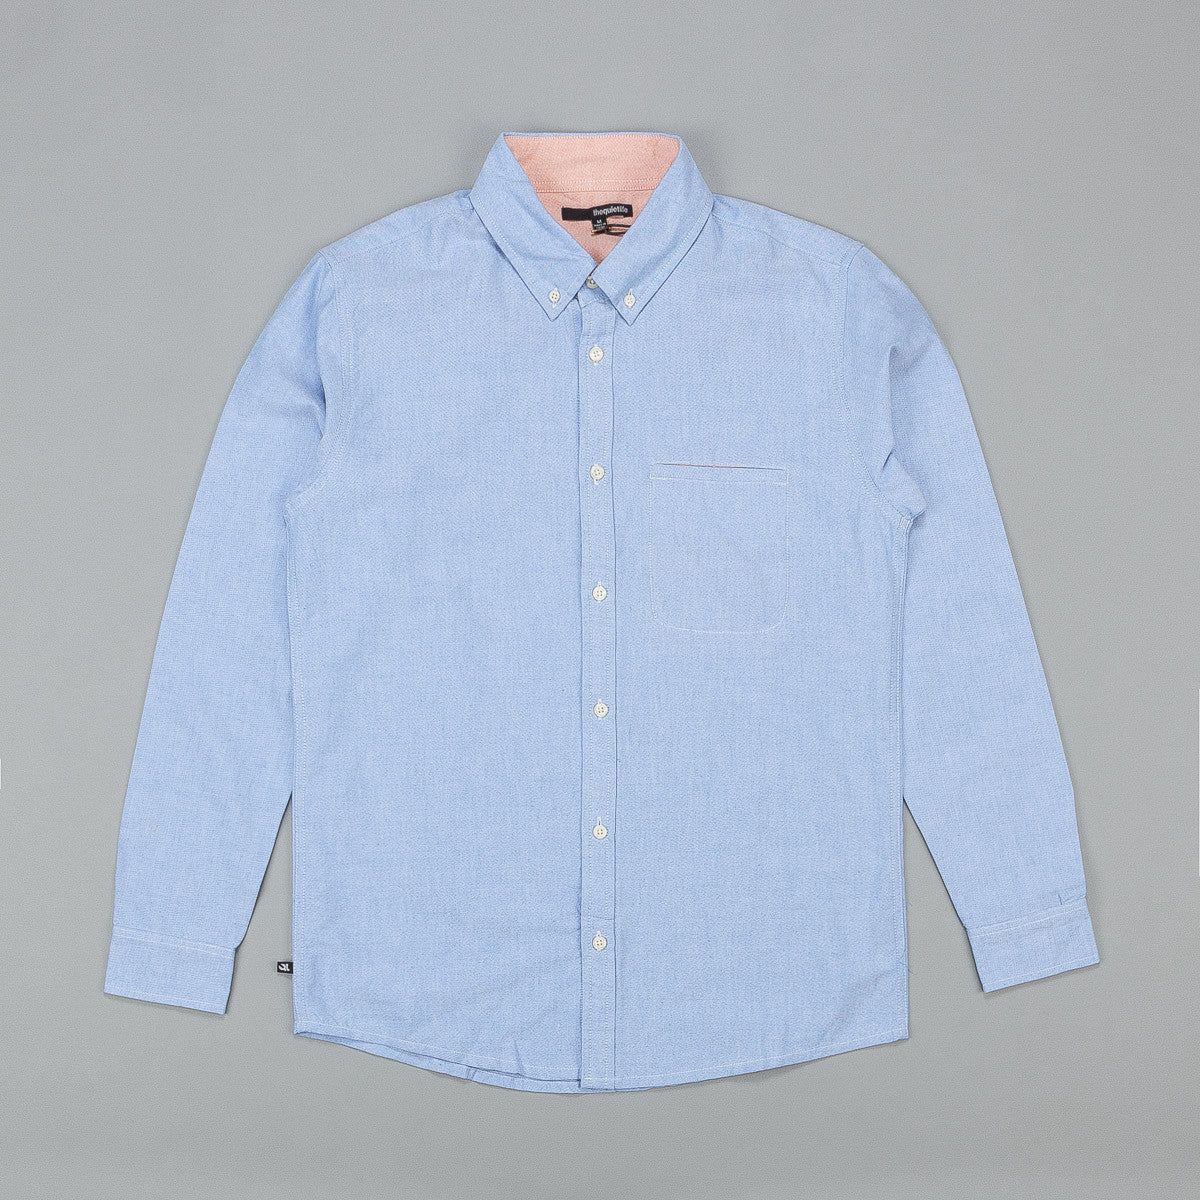 The Quiet Life Oxford Button Up Shirt